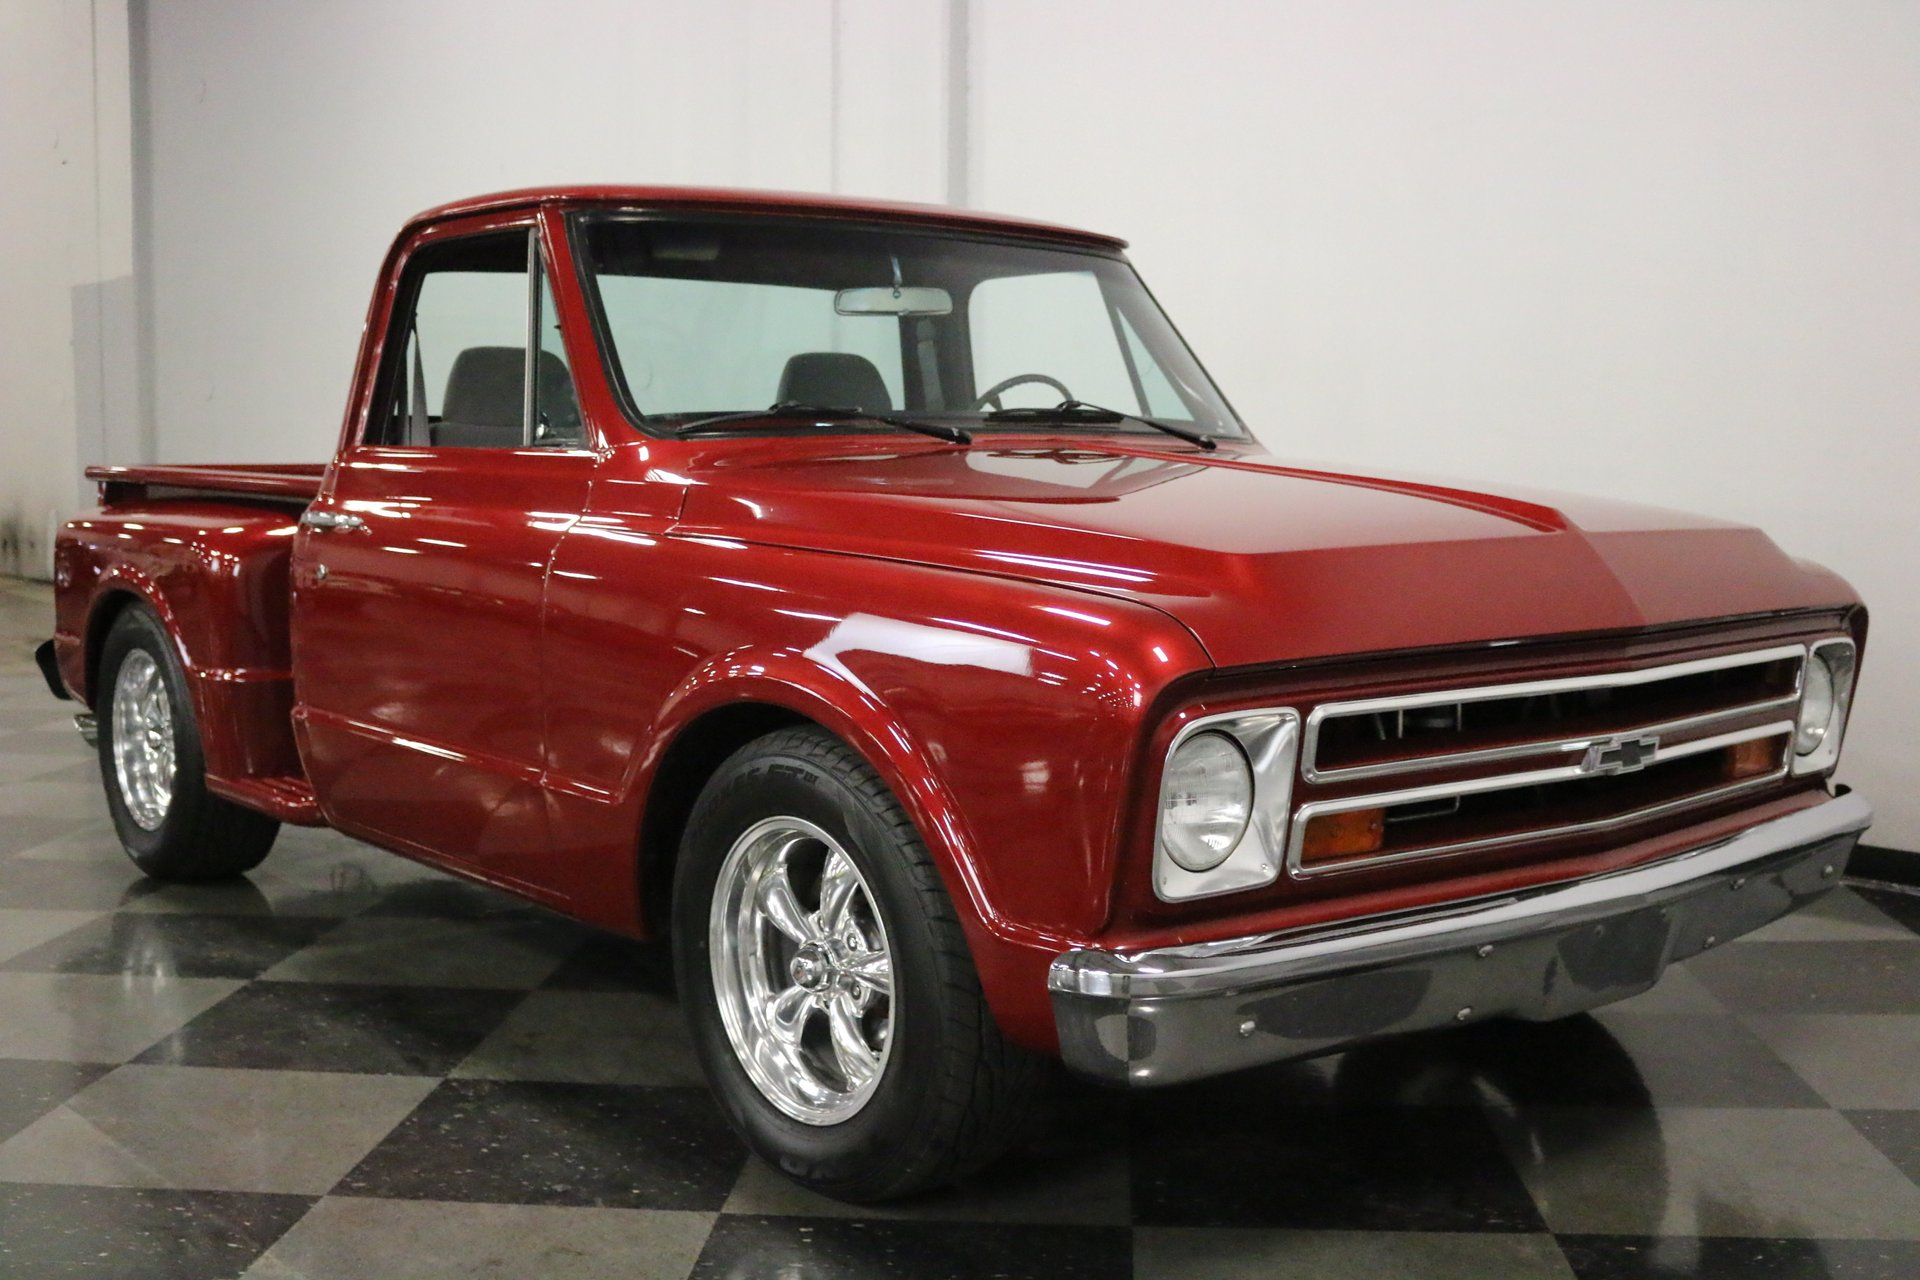 1968 Chevrolet C10 Streetside Classics The Nations Trusted